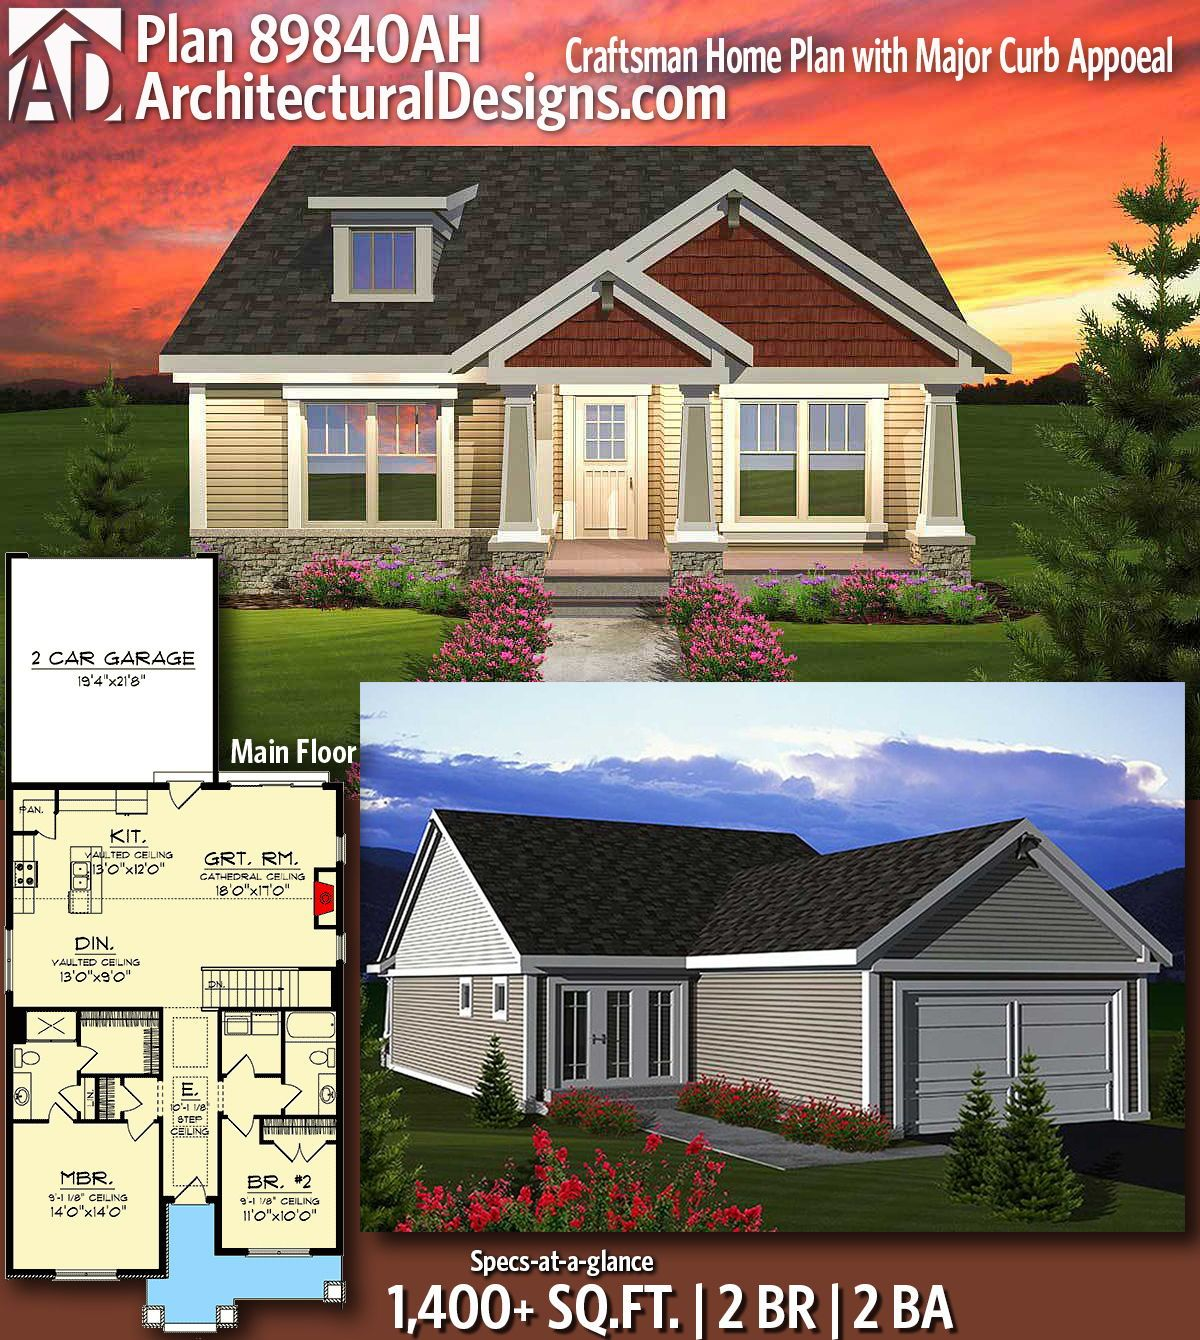 Plan 89840AH: Craftsman Home Plan With Major Curb Appoeal